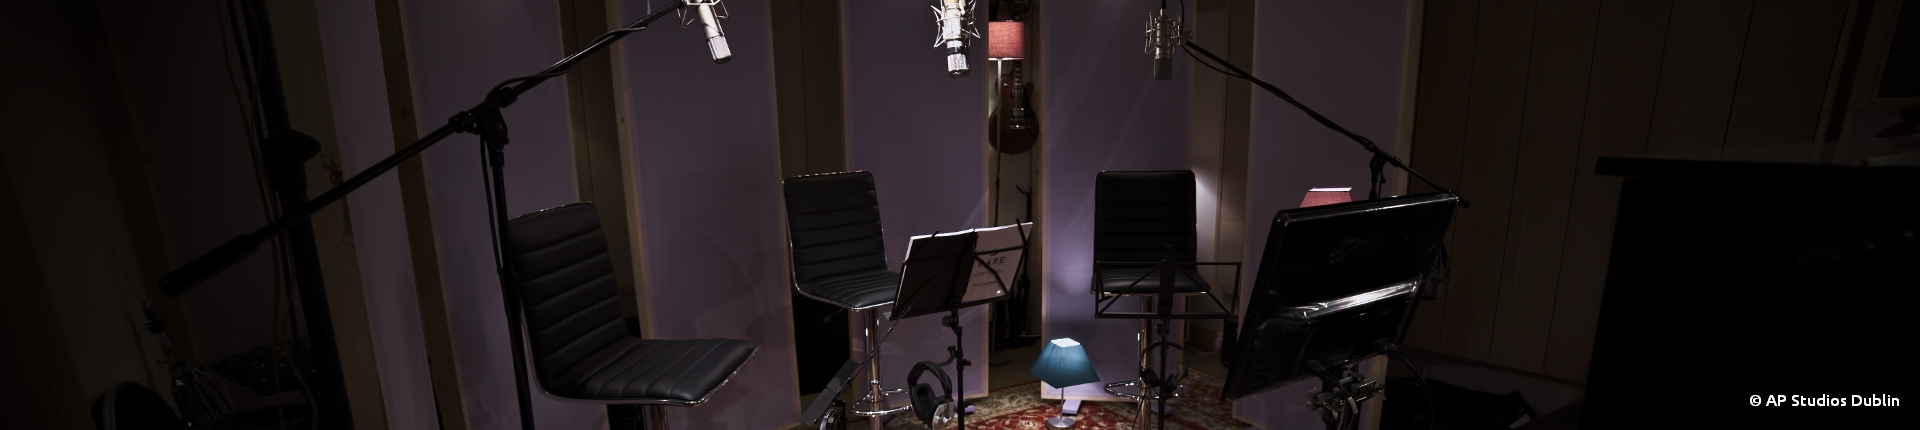 AP Recording Studios Dublin Voice Over/Dubbing Recording Set up